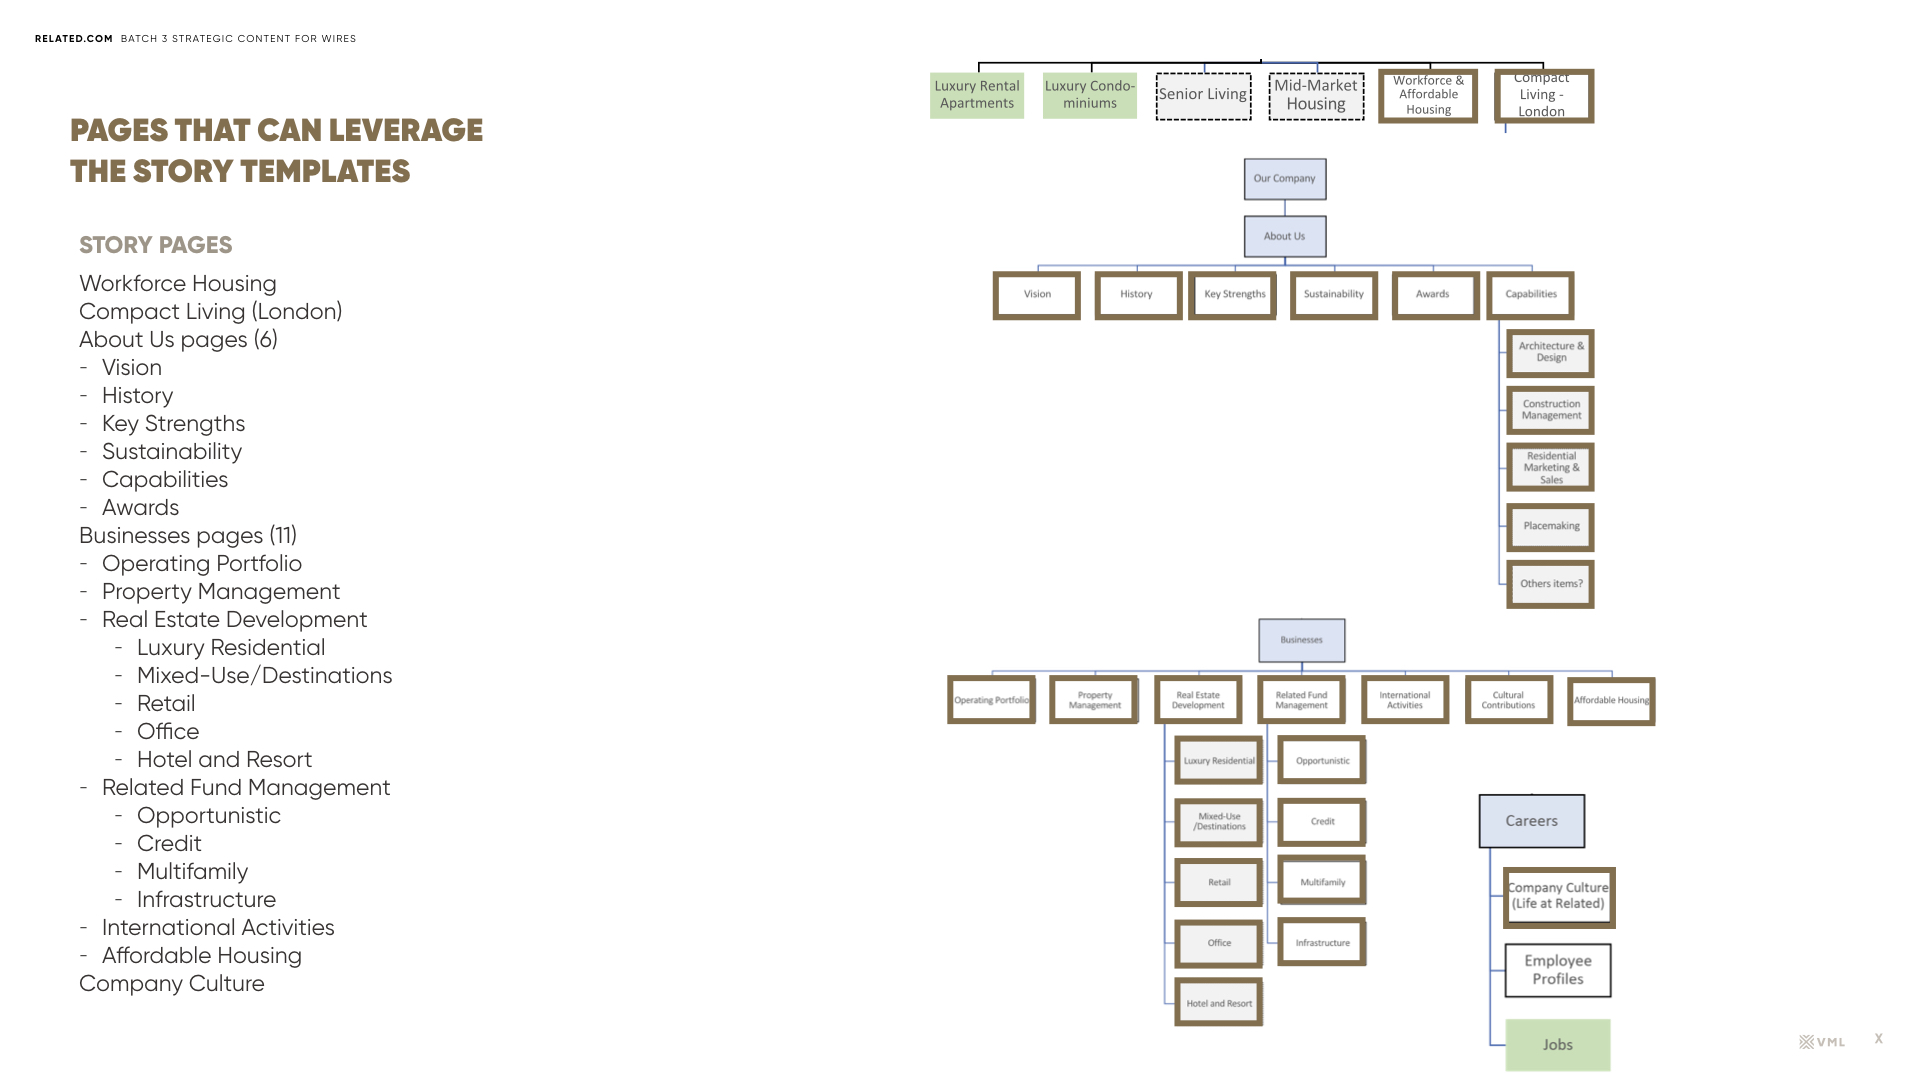 Related.com-Site-Map-Hierarchy-07192018.030